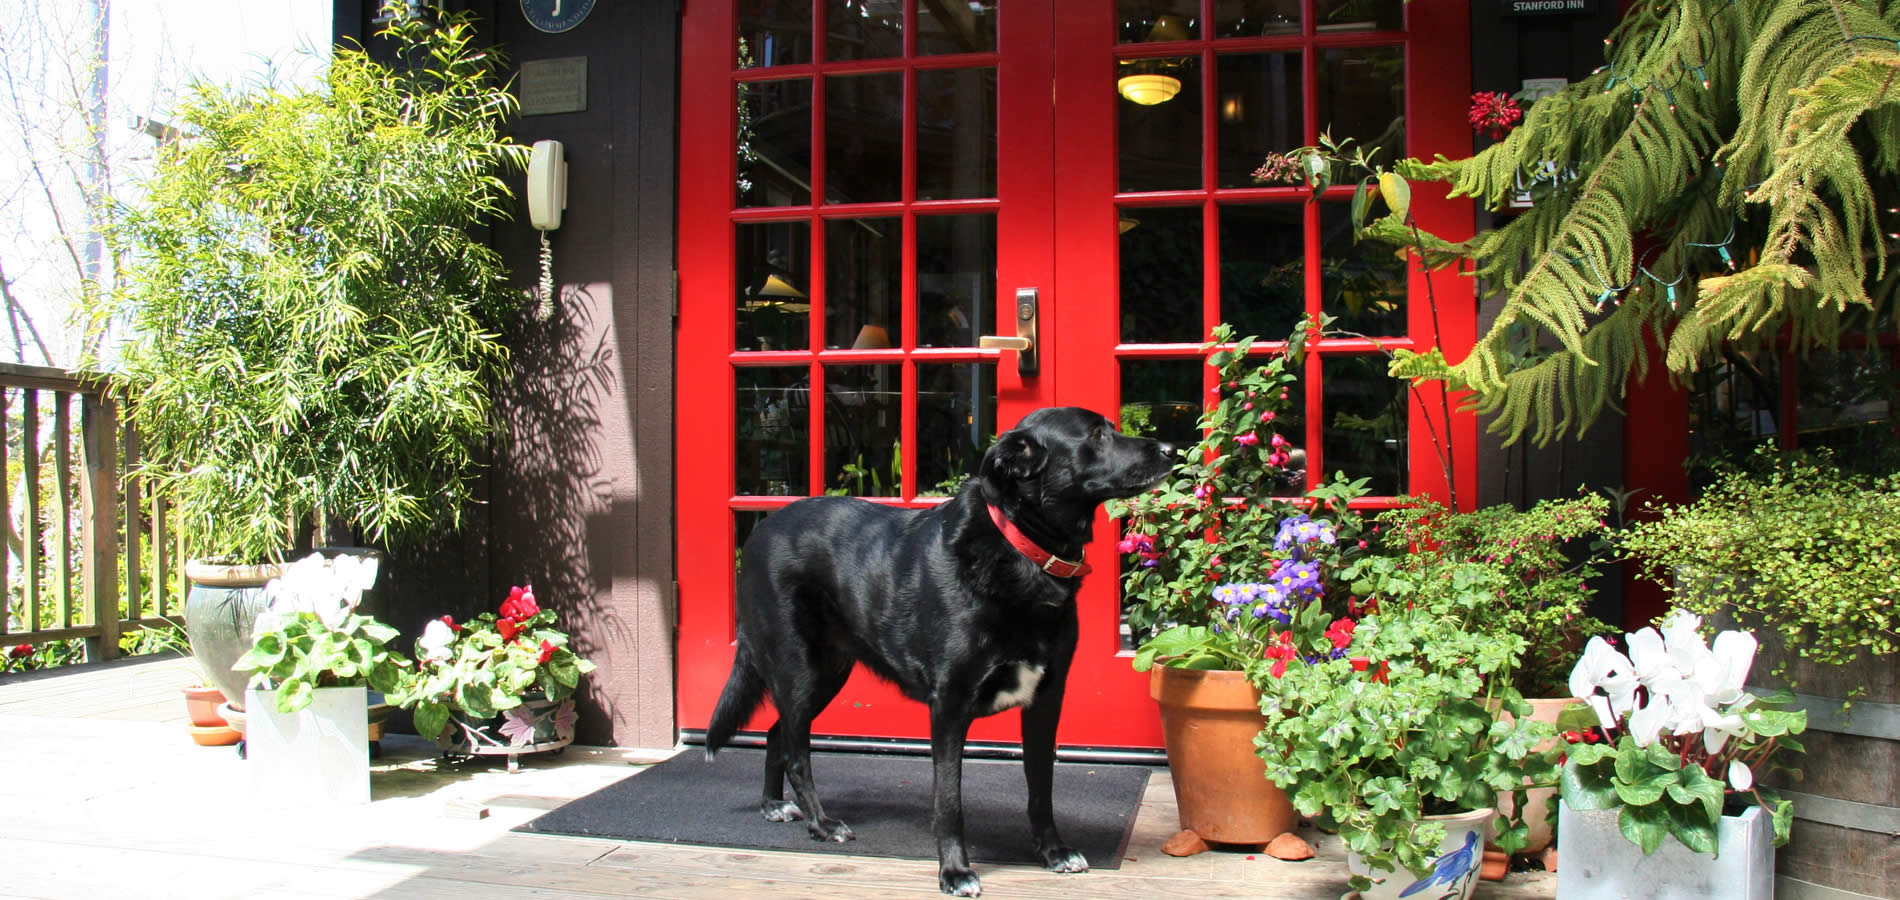 pet friendly mendocino hotel with dog welcomed